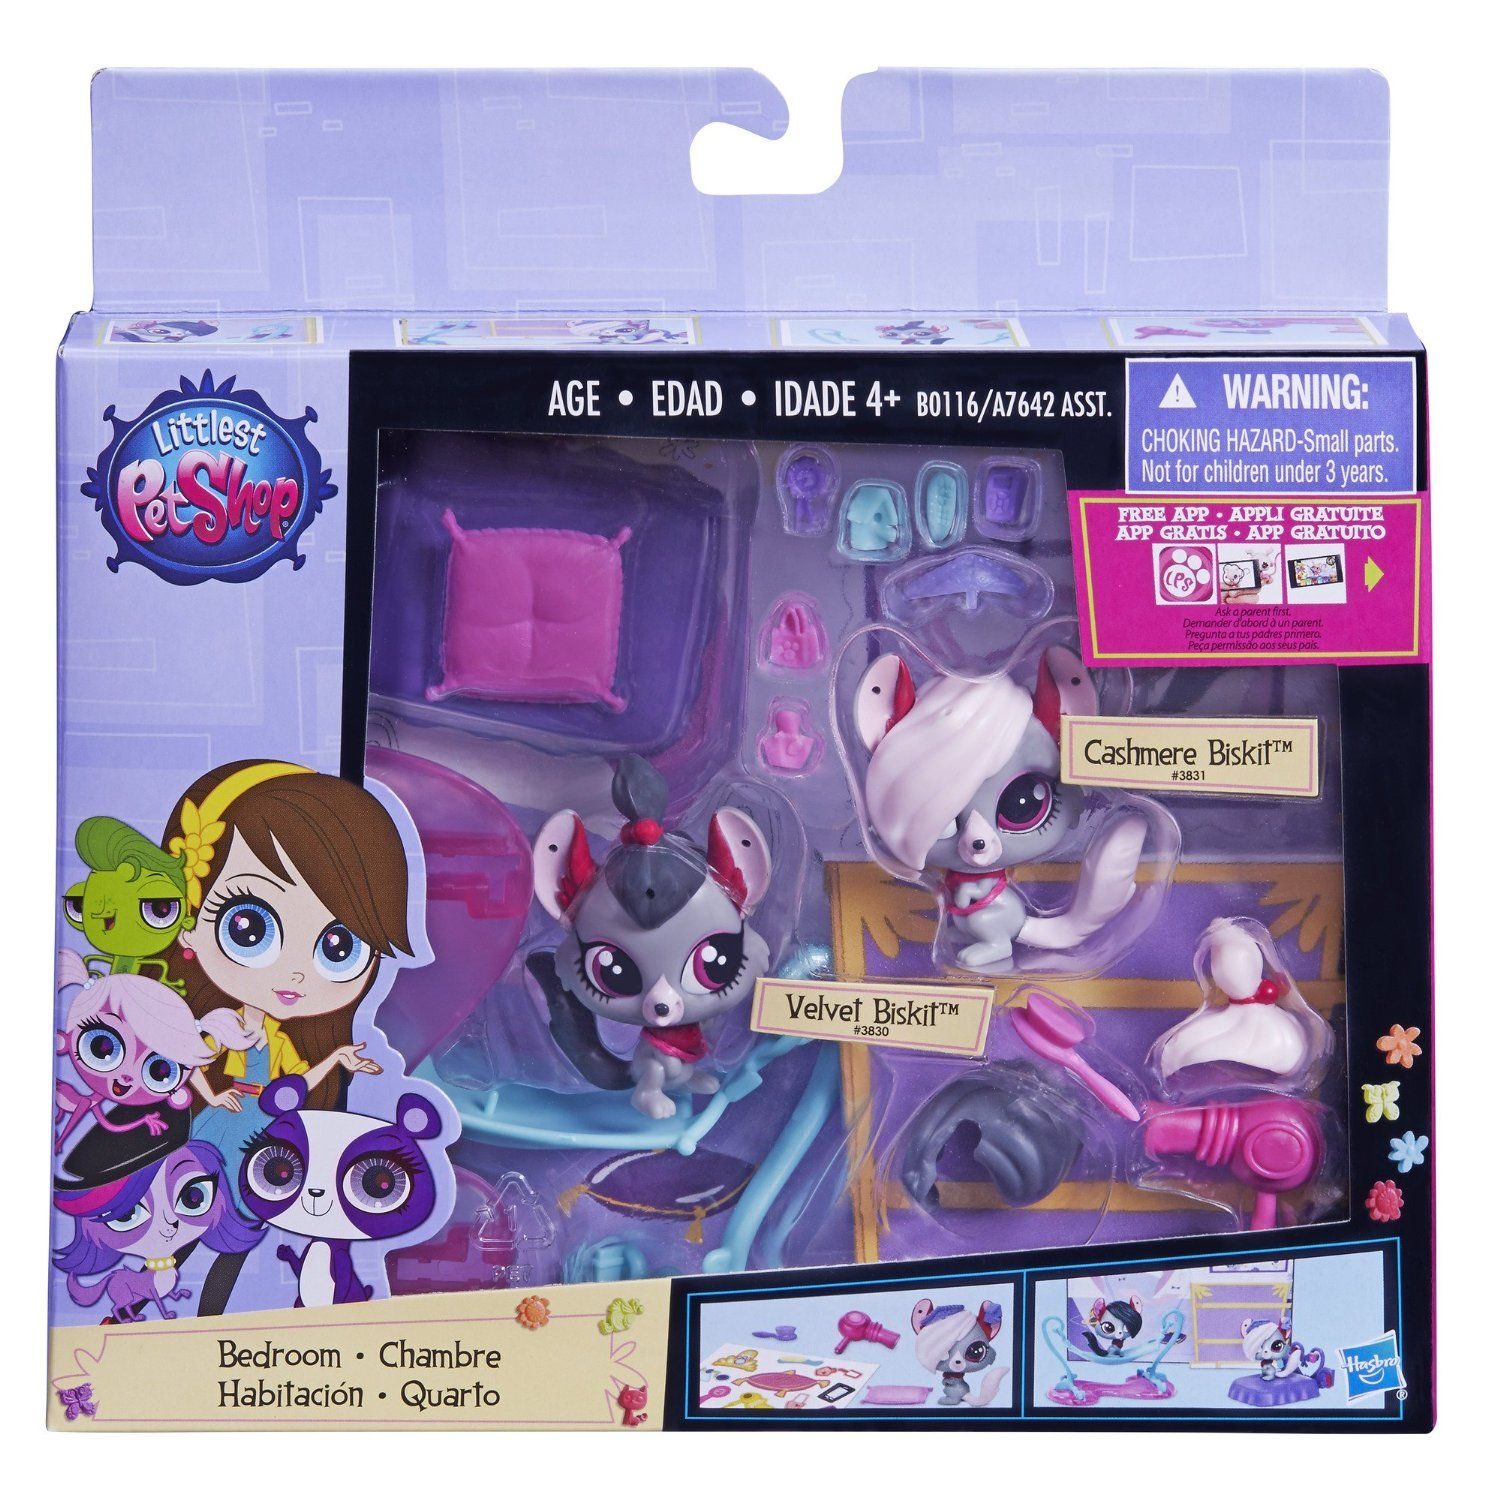 Amazon Com Littlest Pet Shop Bedroom Chinchilla Playset Cashmere Biskit 3831 Littlest Pet Shop Pet Shop Little Pet Shop